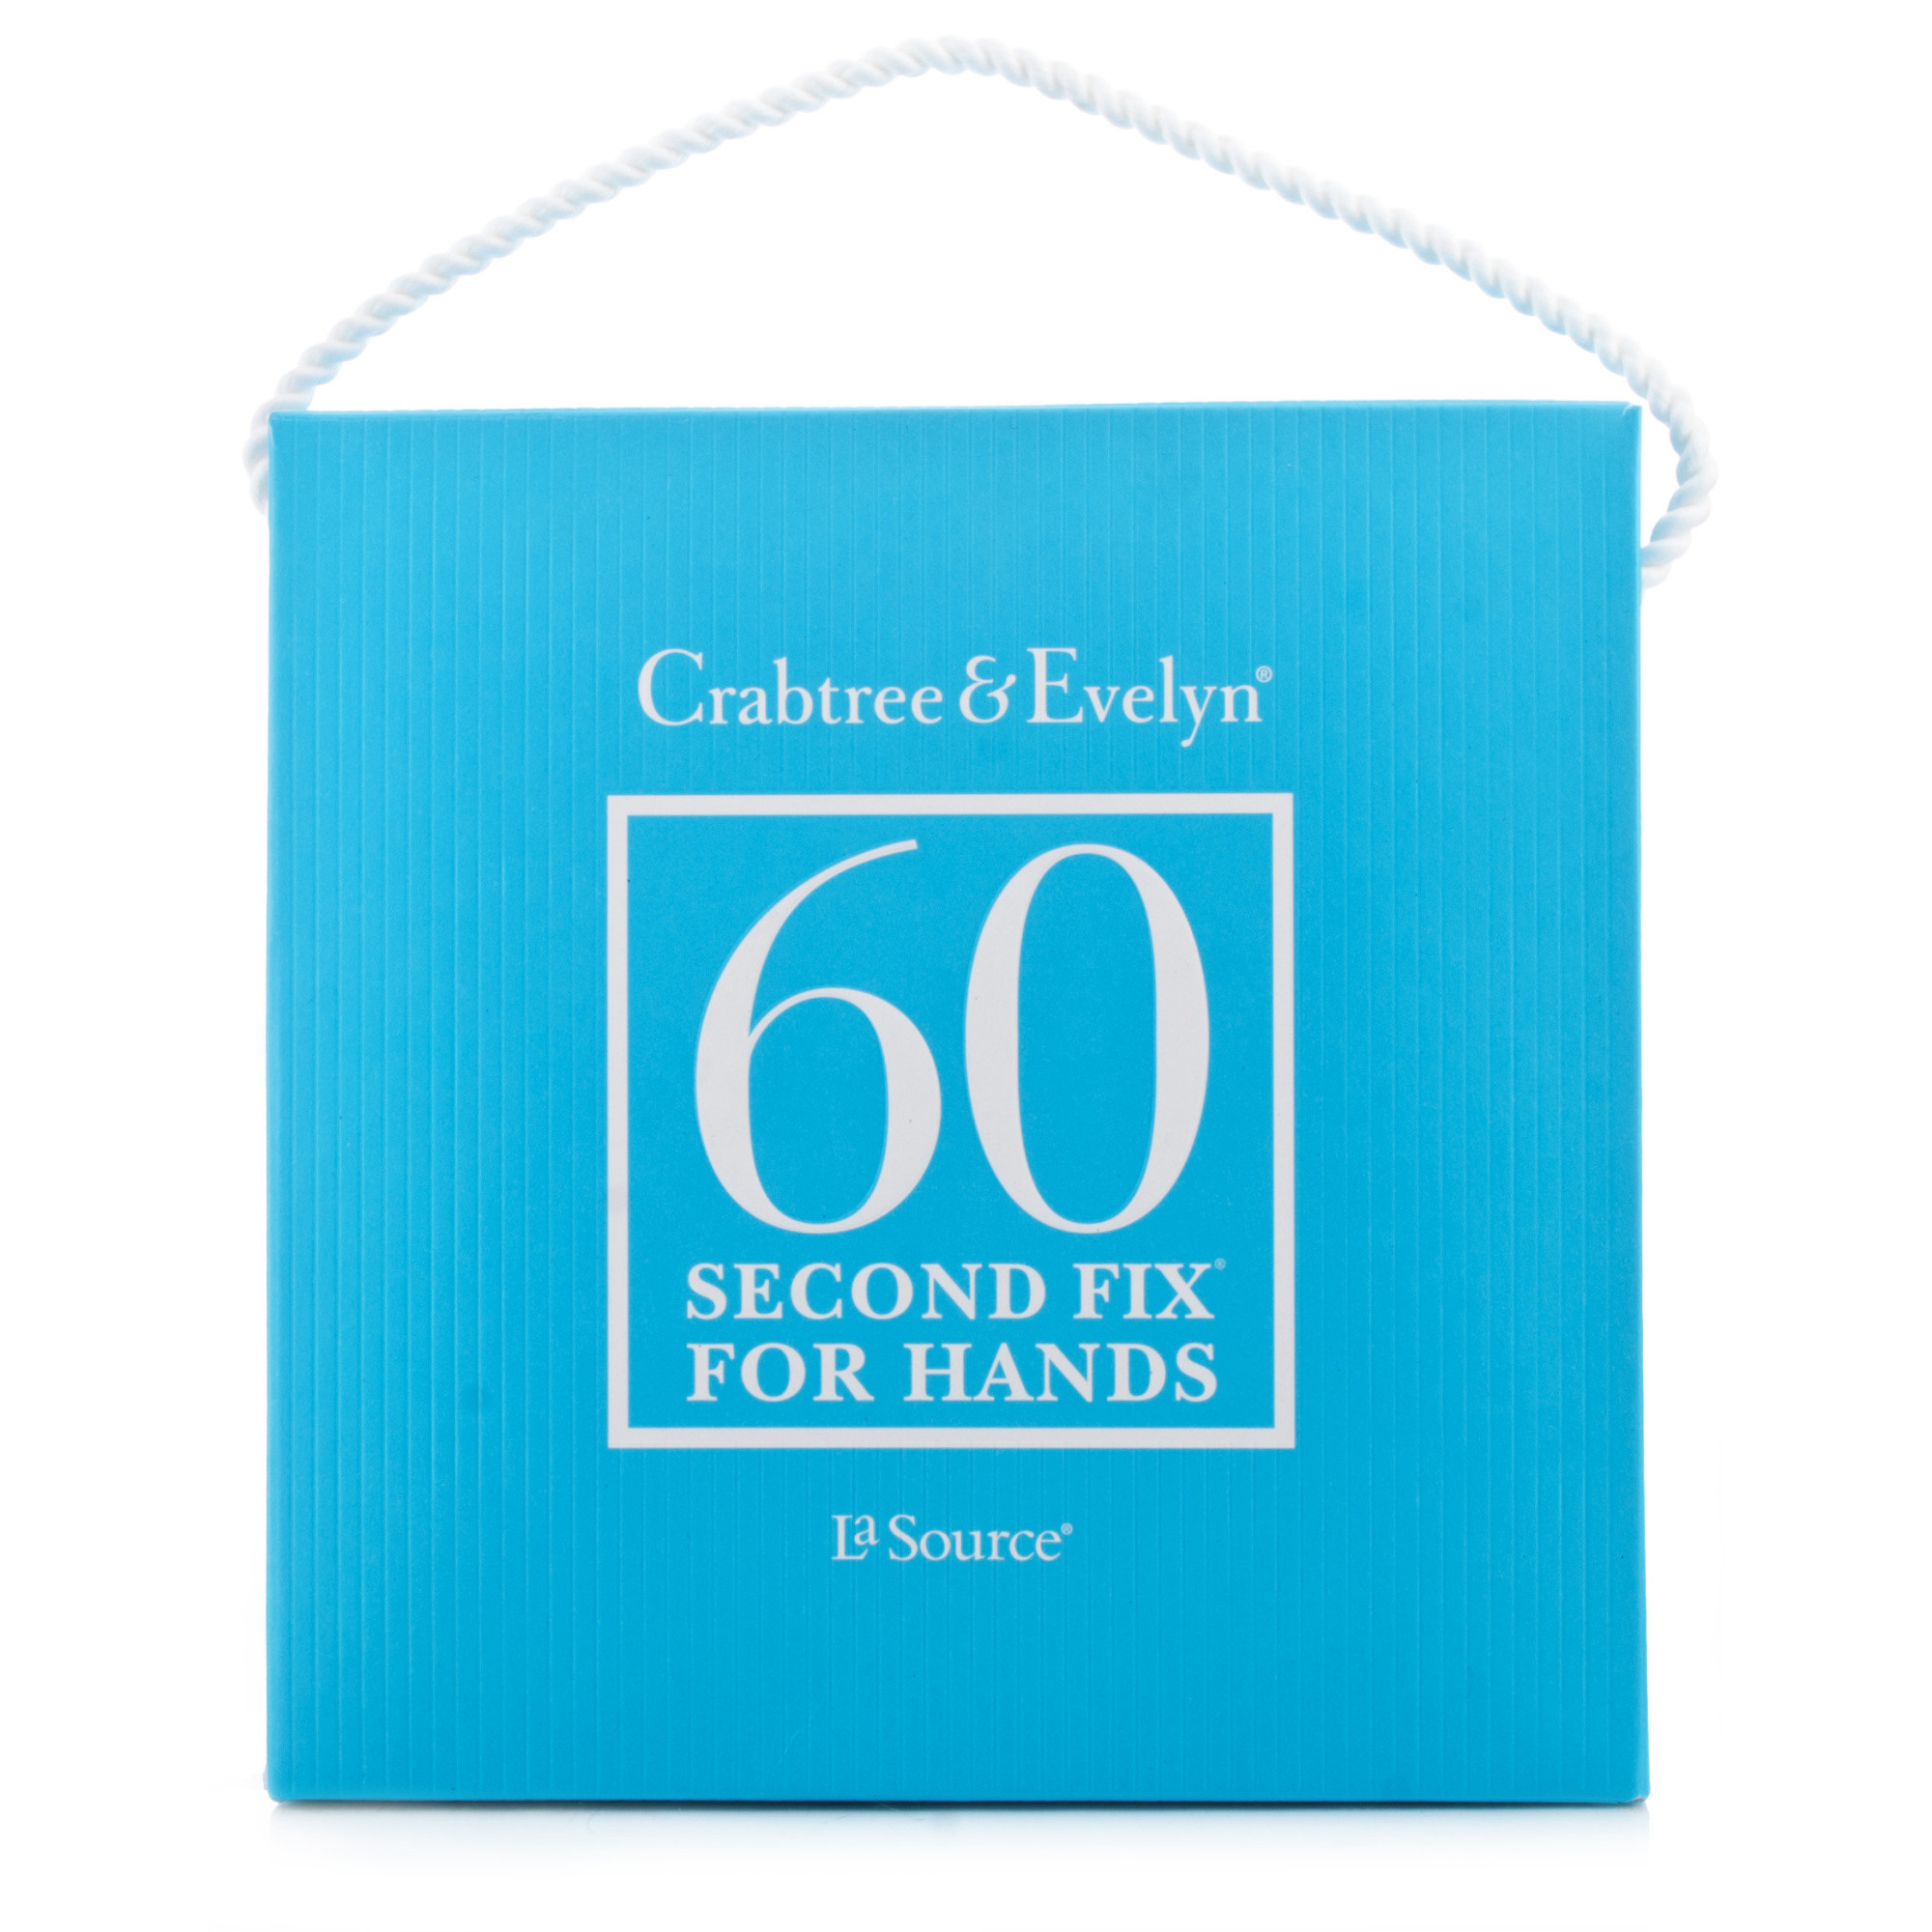 Crabtree & Evelyn La Source 60 Second Fix Kit for Hands Full Size